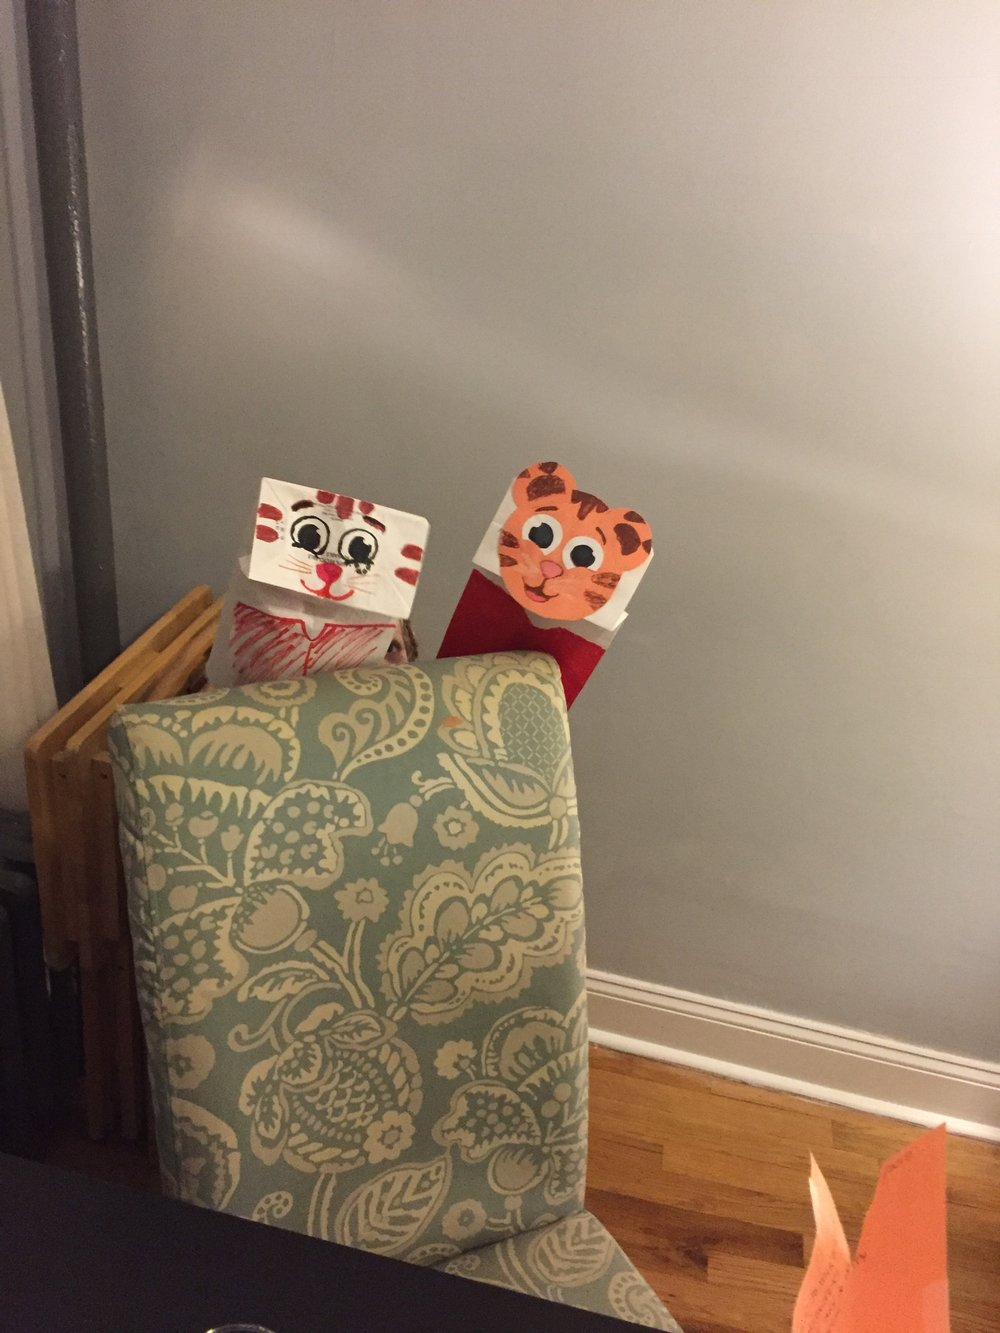 Rob made Daniel Tiger puppets on one of Lucie's sick days.